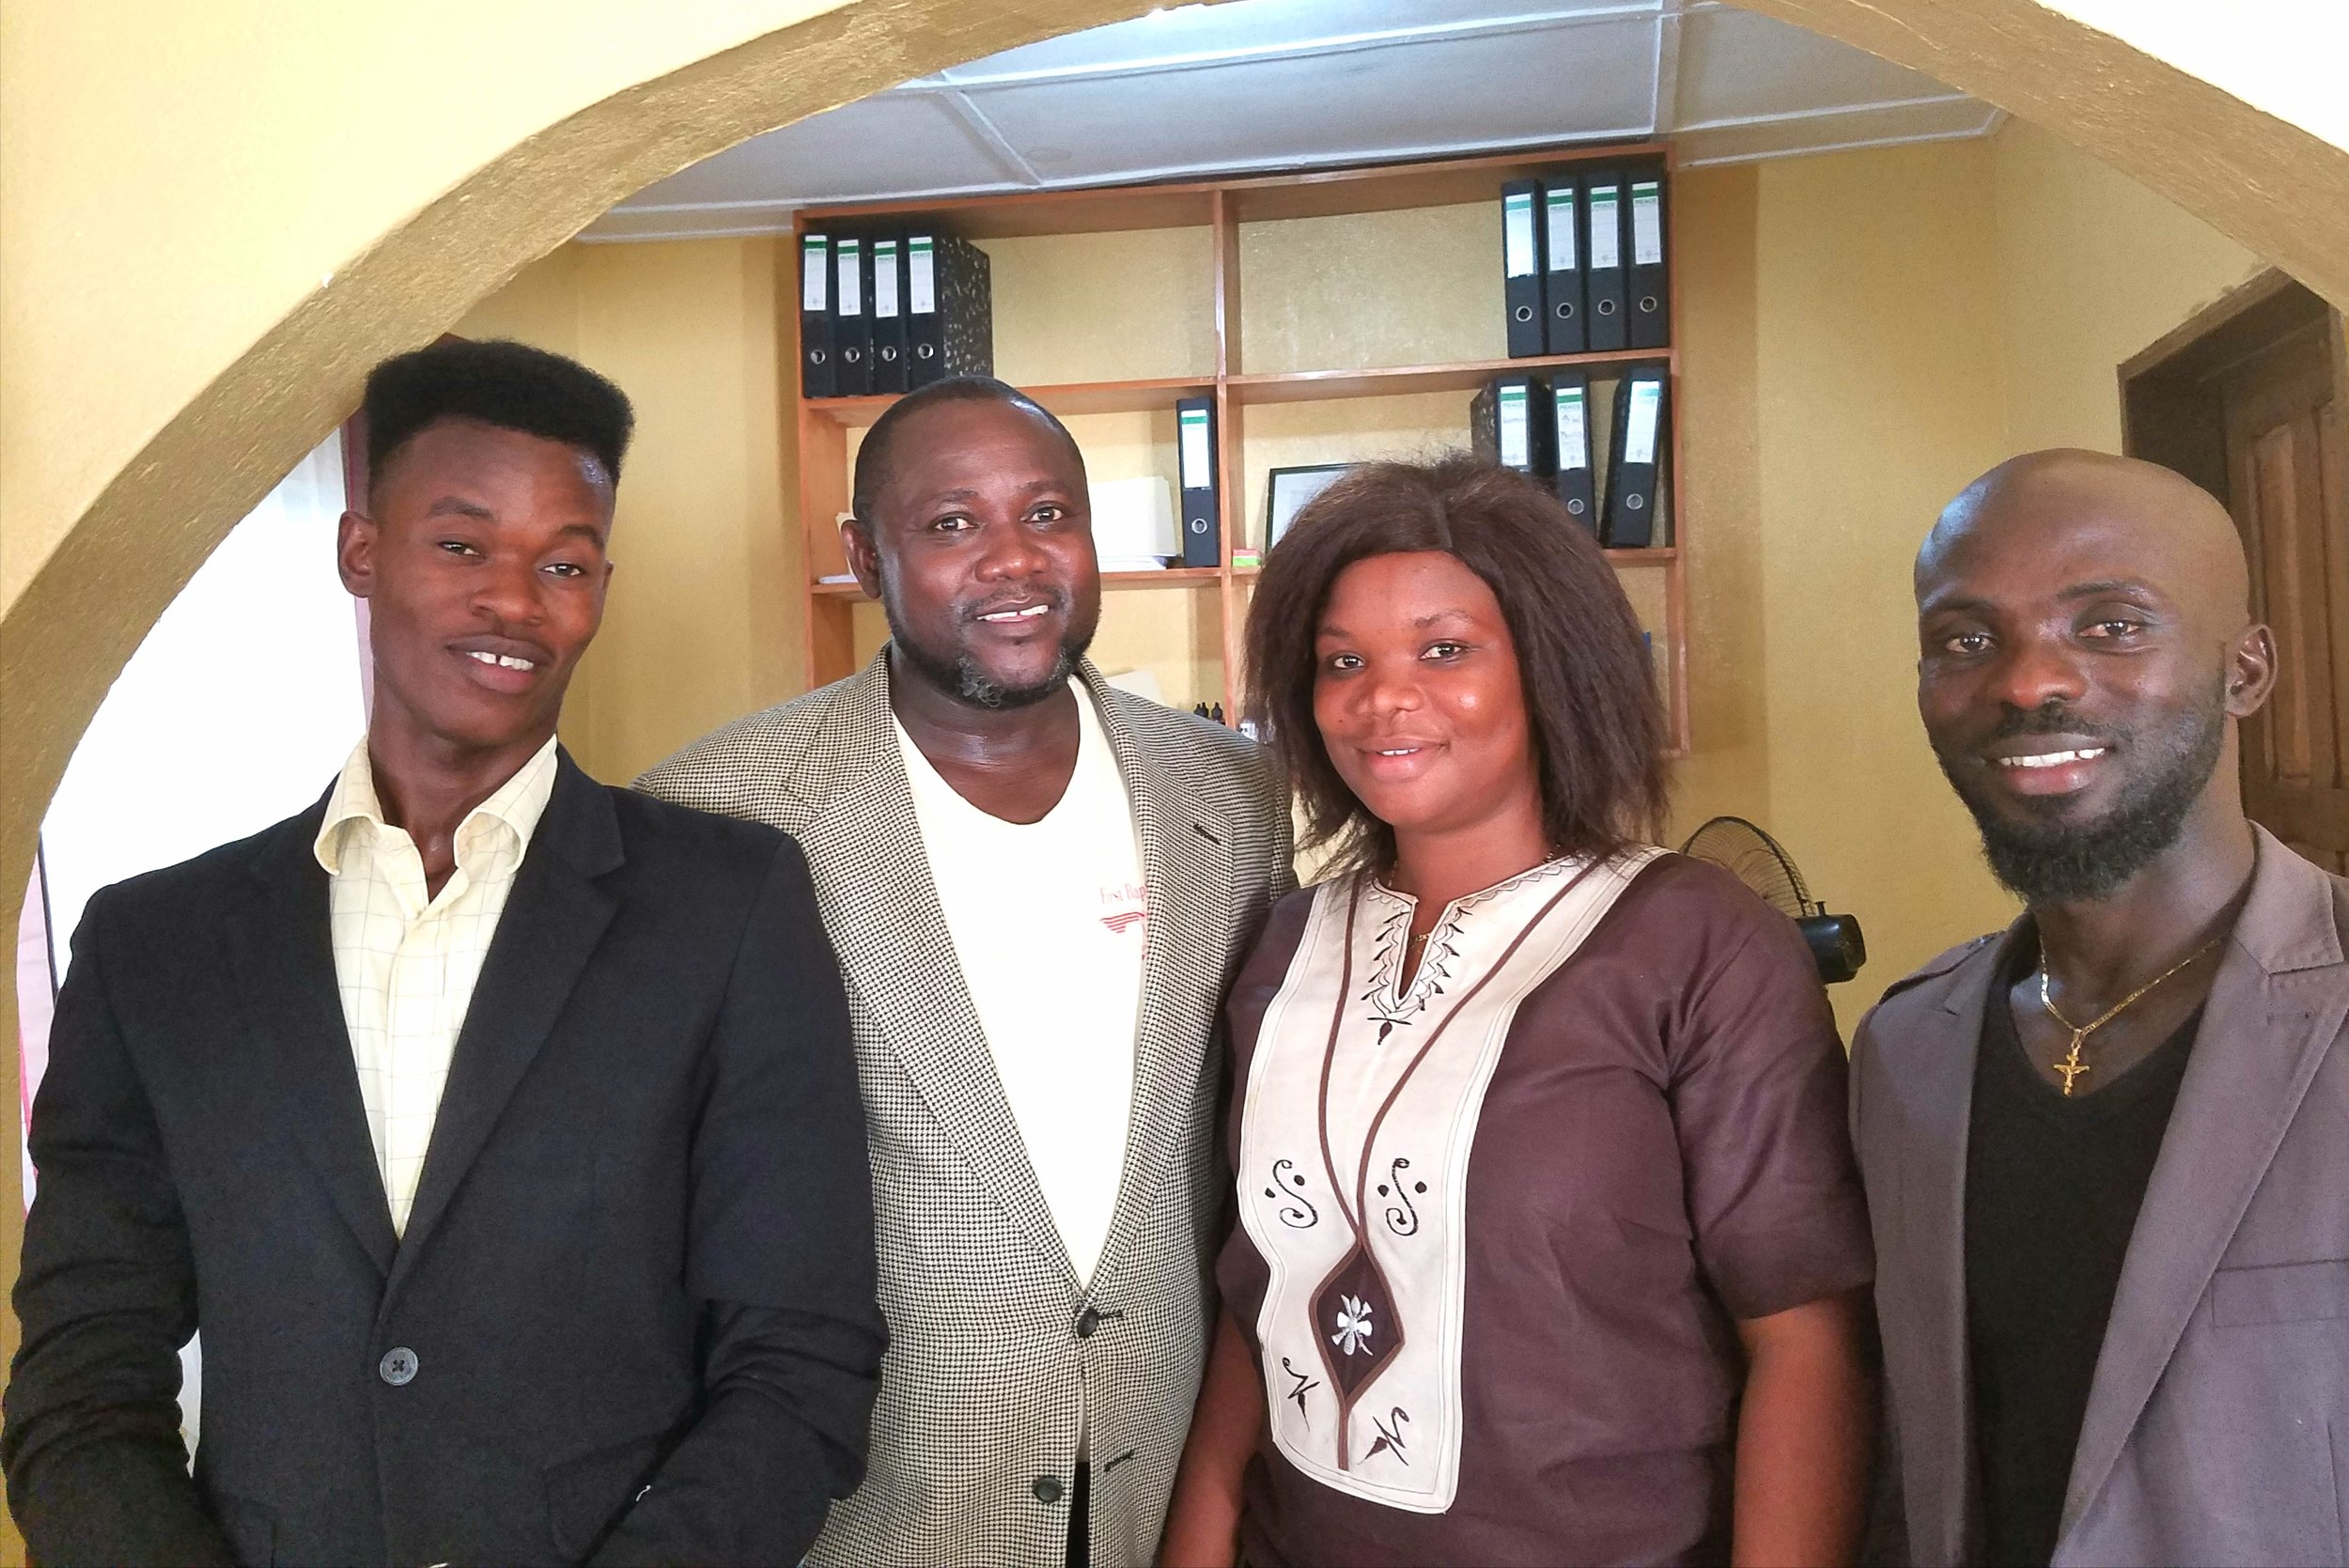 Jessy with staff members in Liberia, William Zeon, (Jessy), Monica Moneh, and Derrick Nyenneh.